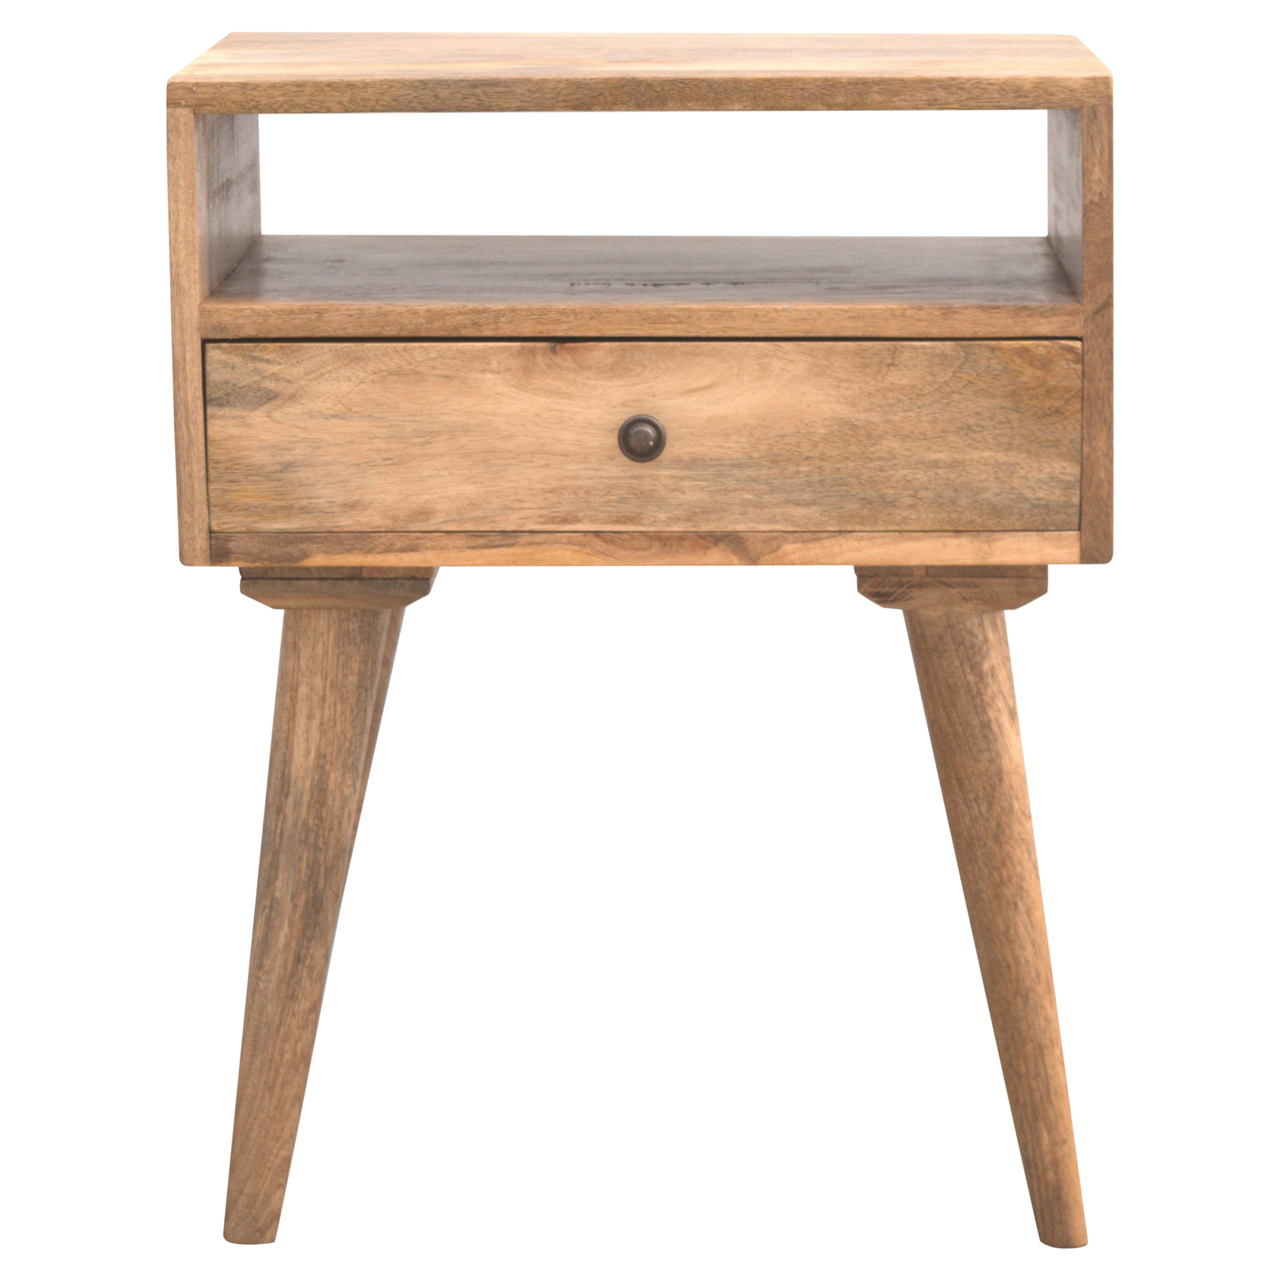 IN143 Nordic Designed Bedside with 1 Drawer & Open Slot